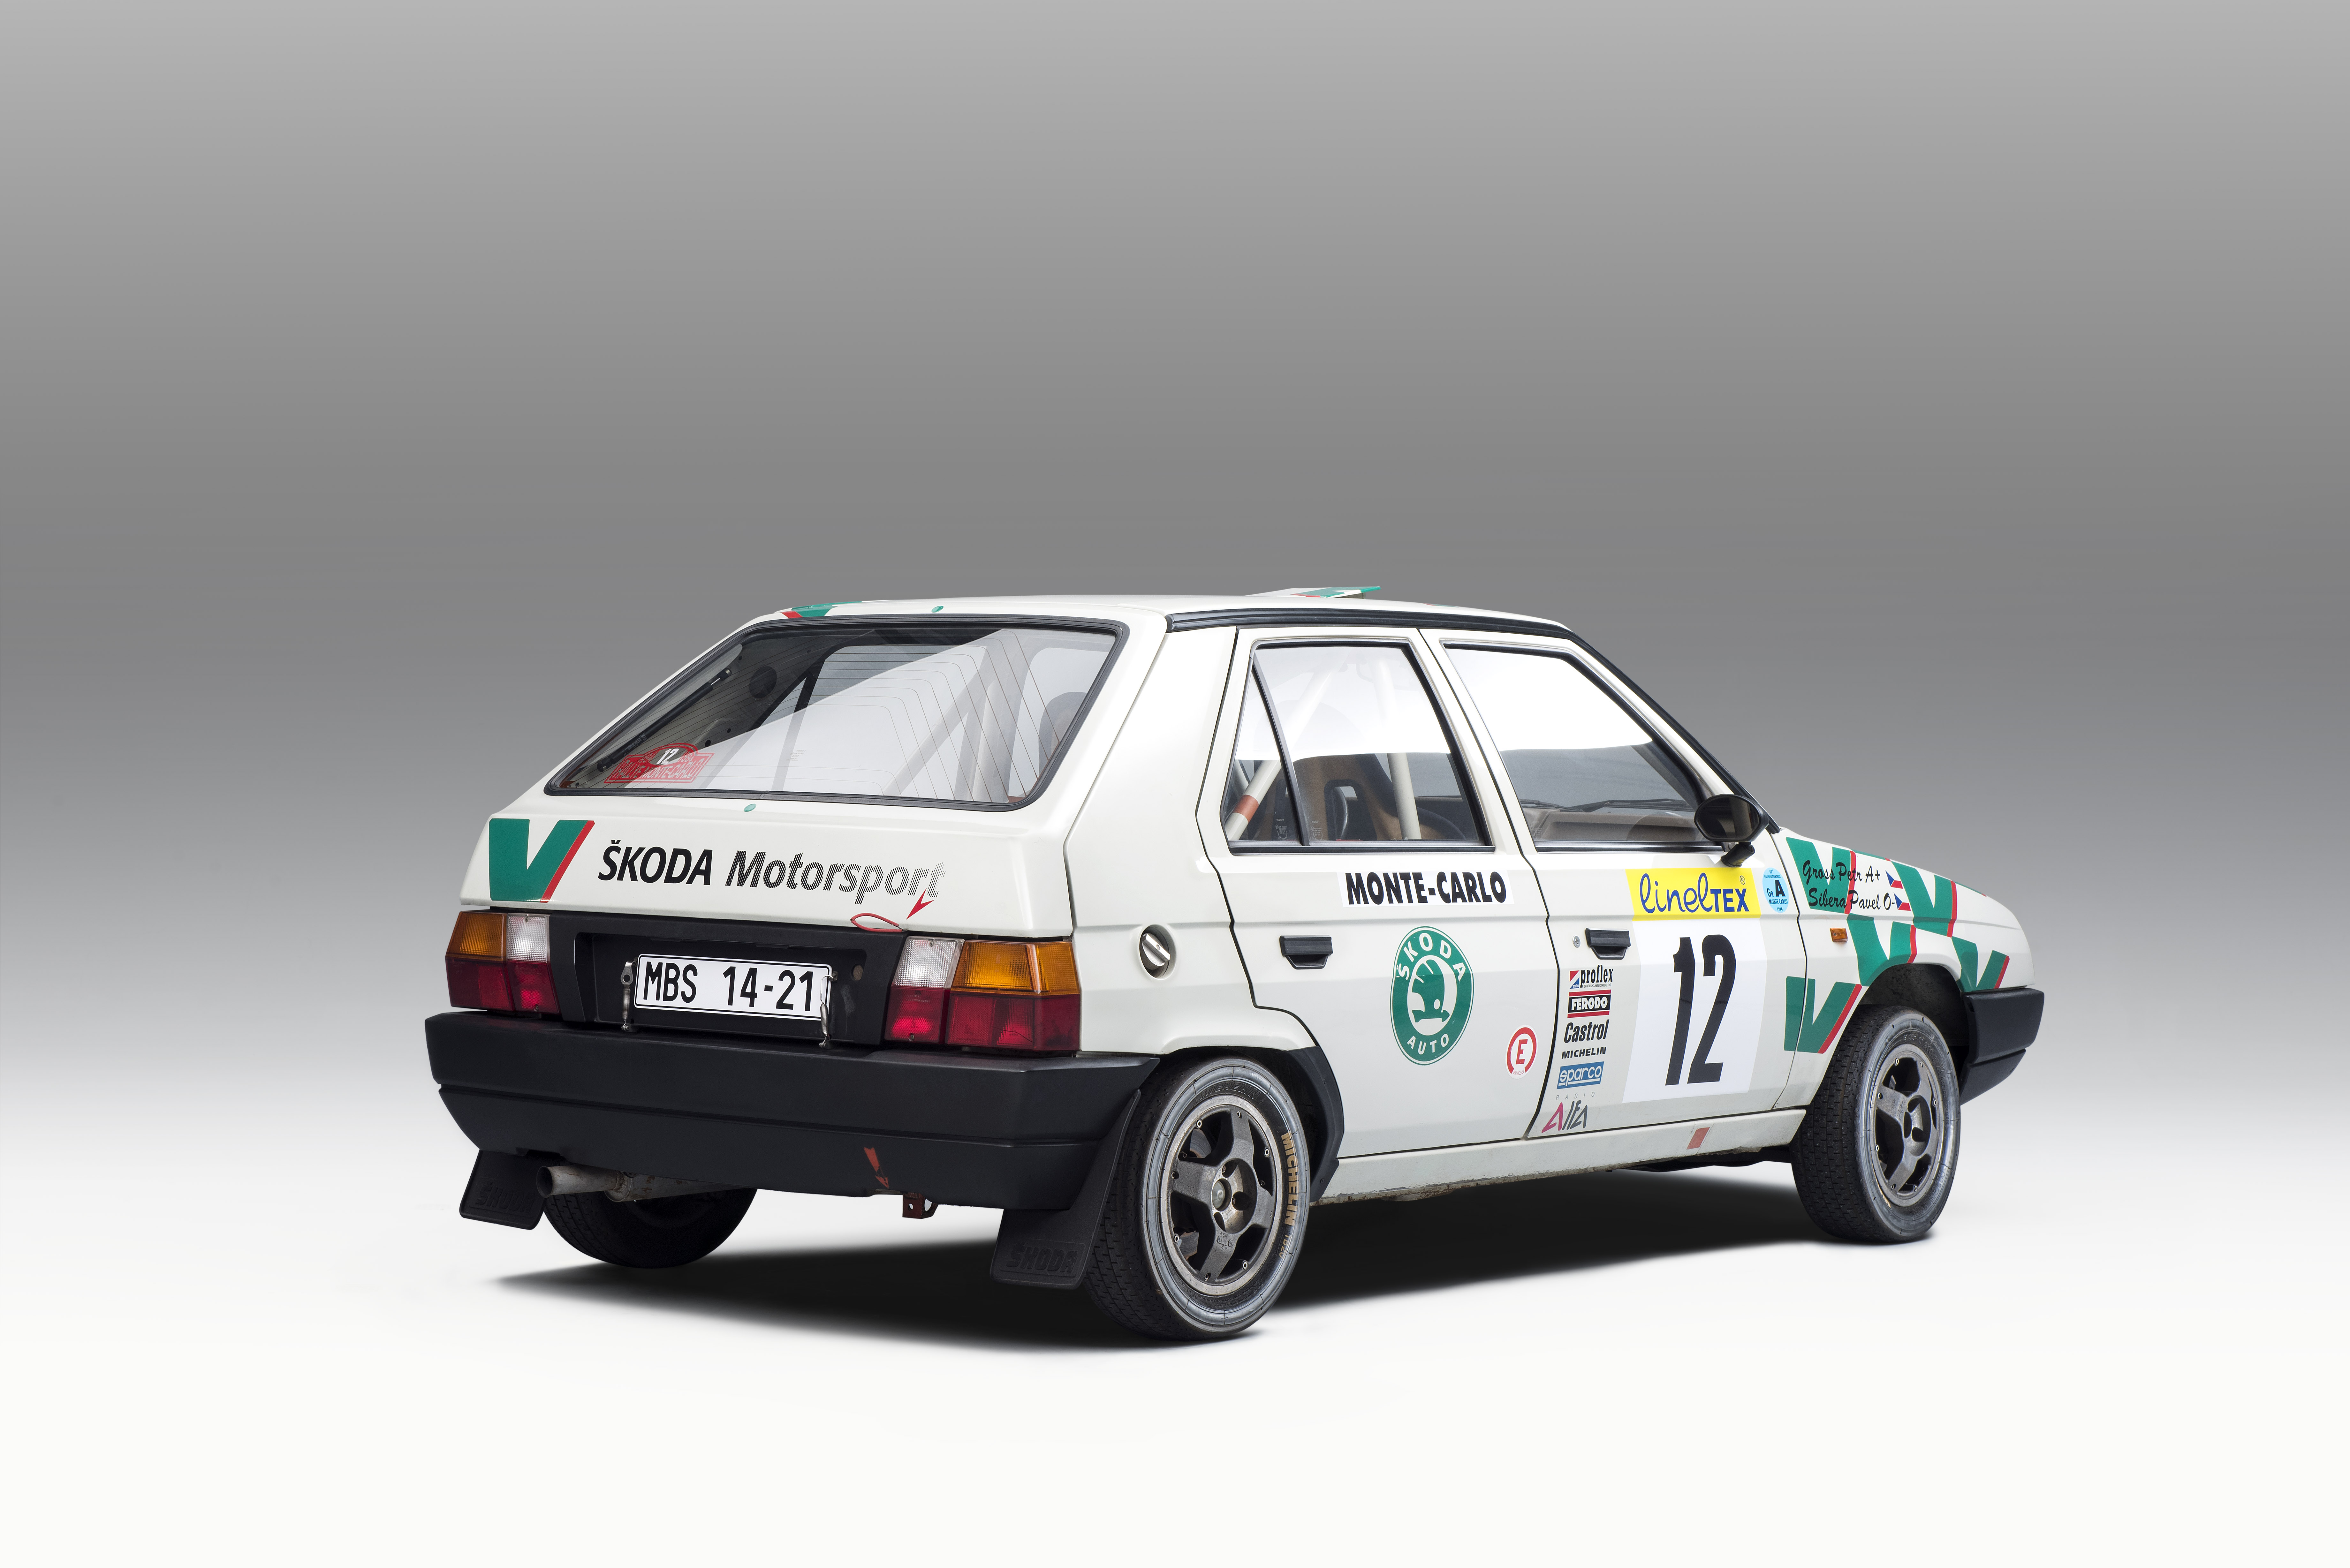 Motorsport versions of the SKODA FAVORIT (1989): All different – and yet familiar - Image 7